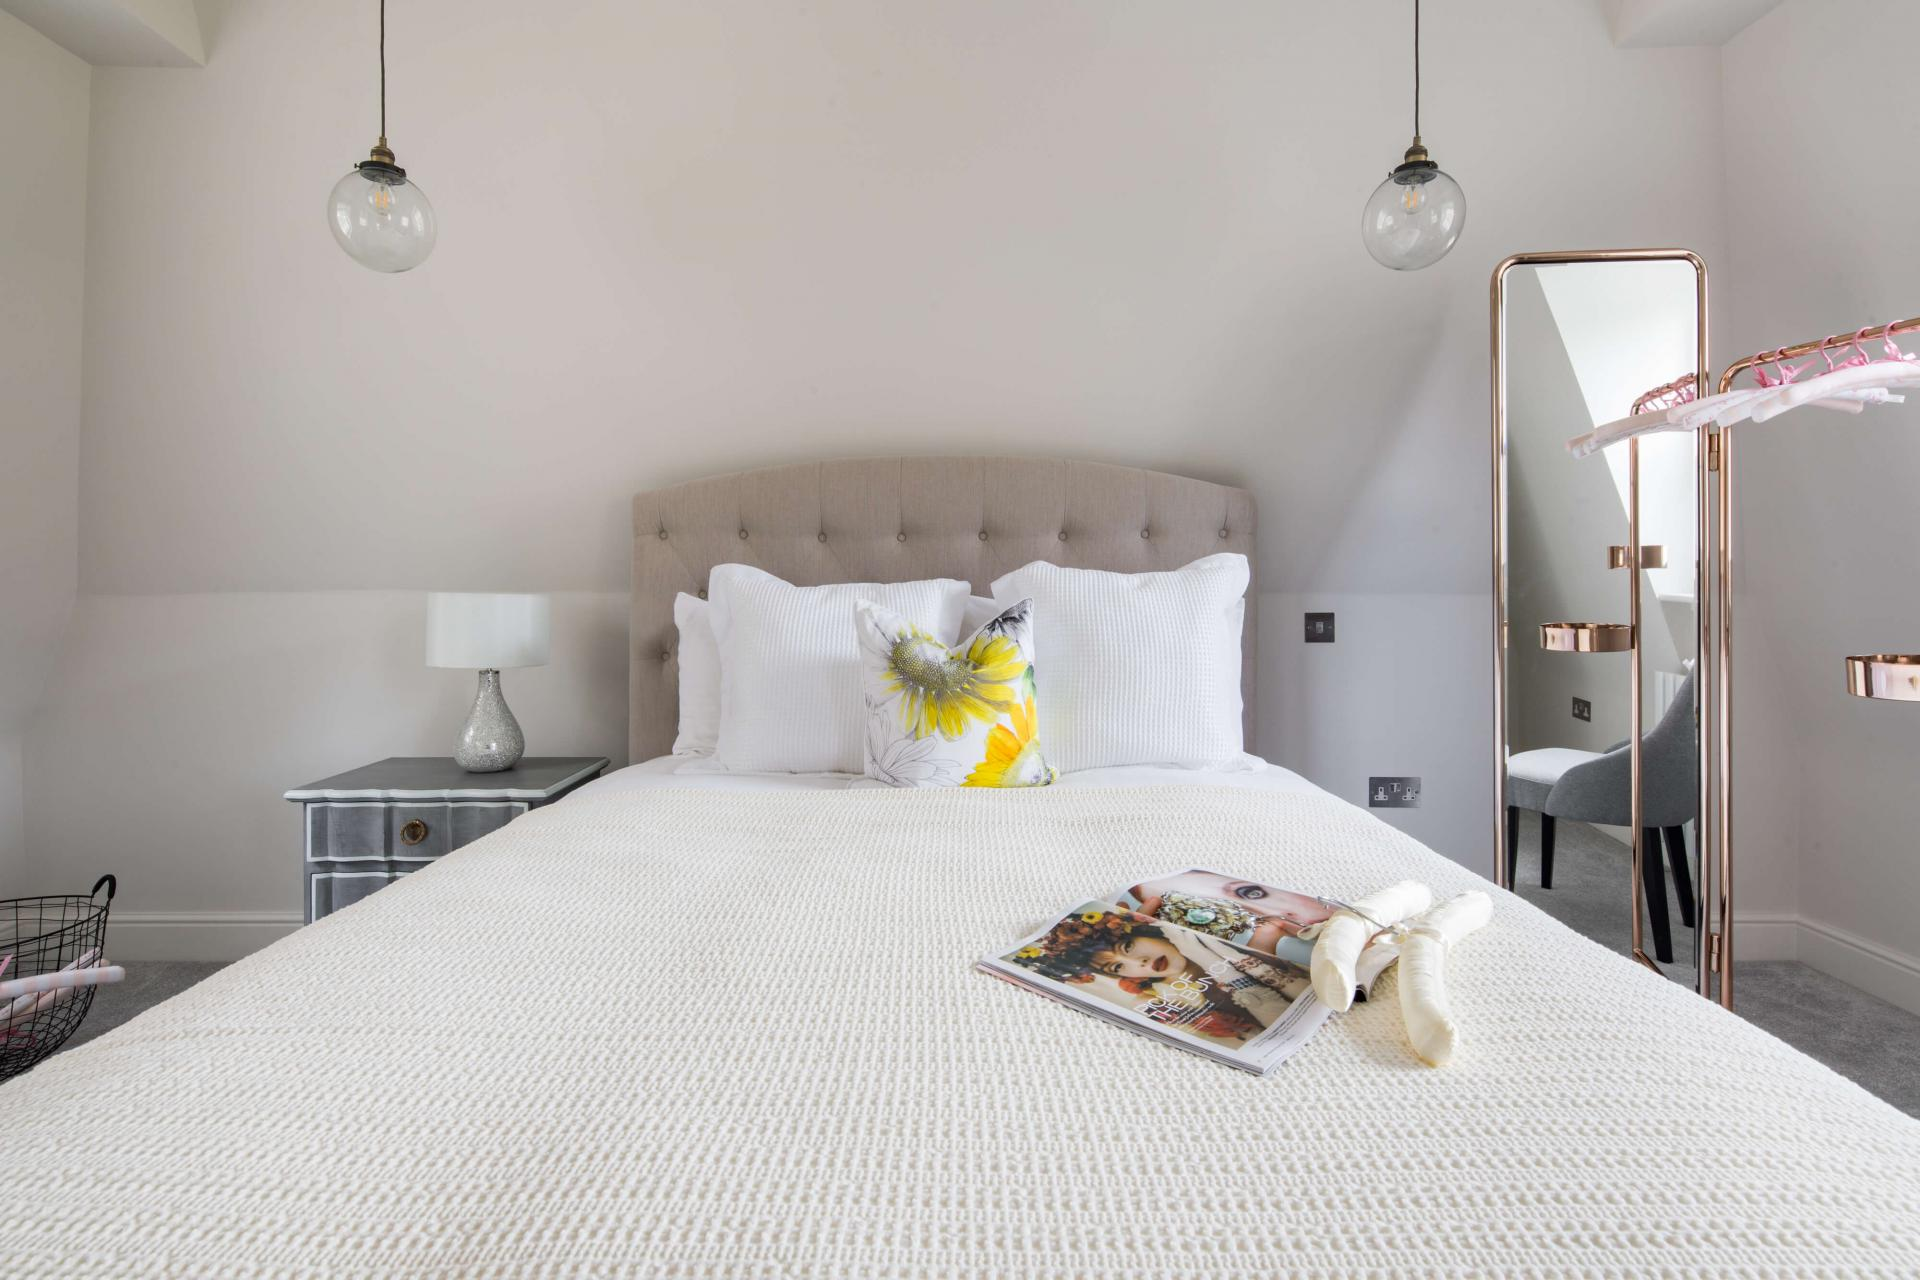 White linen at Rainsford Mews, Paddington, London - Citybase Apartments